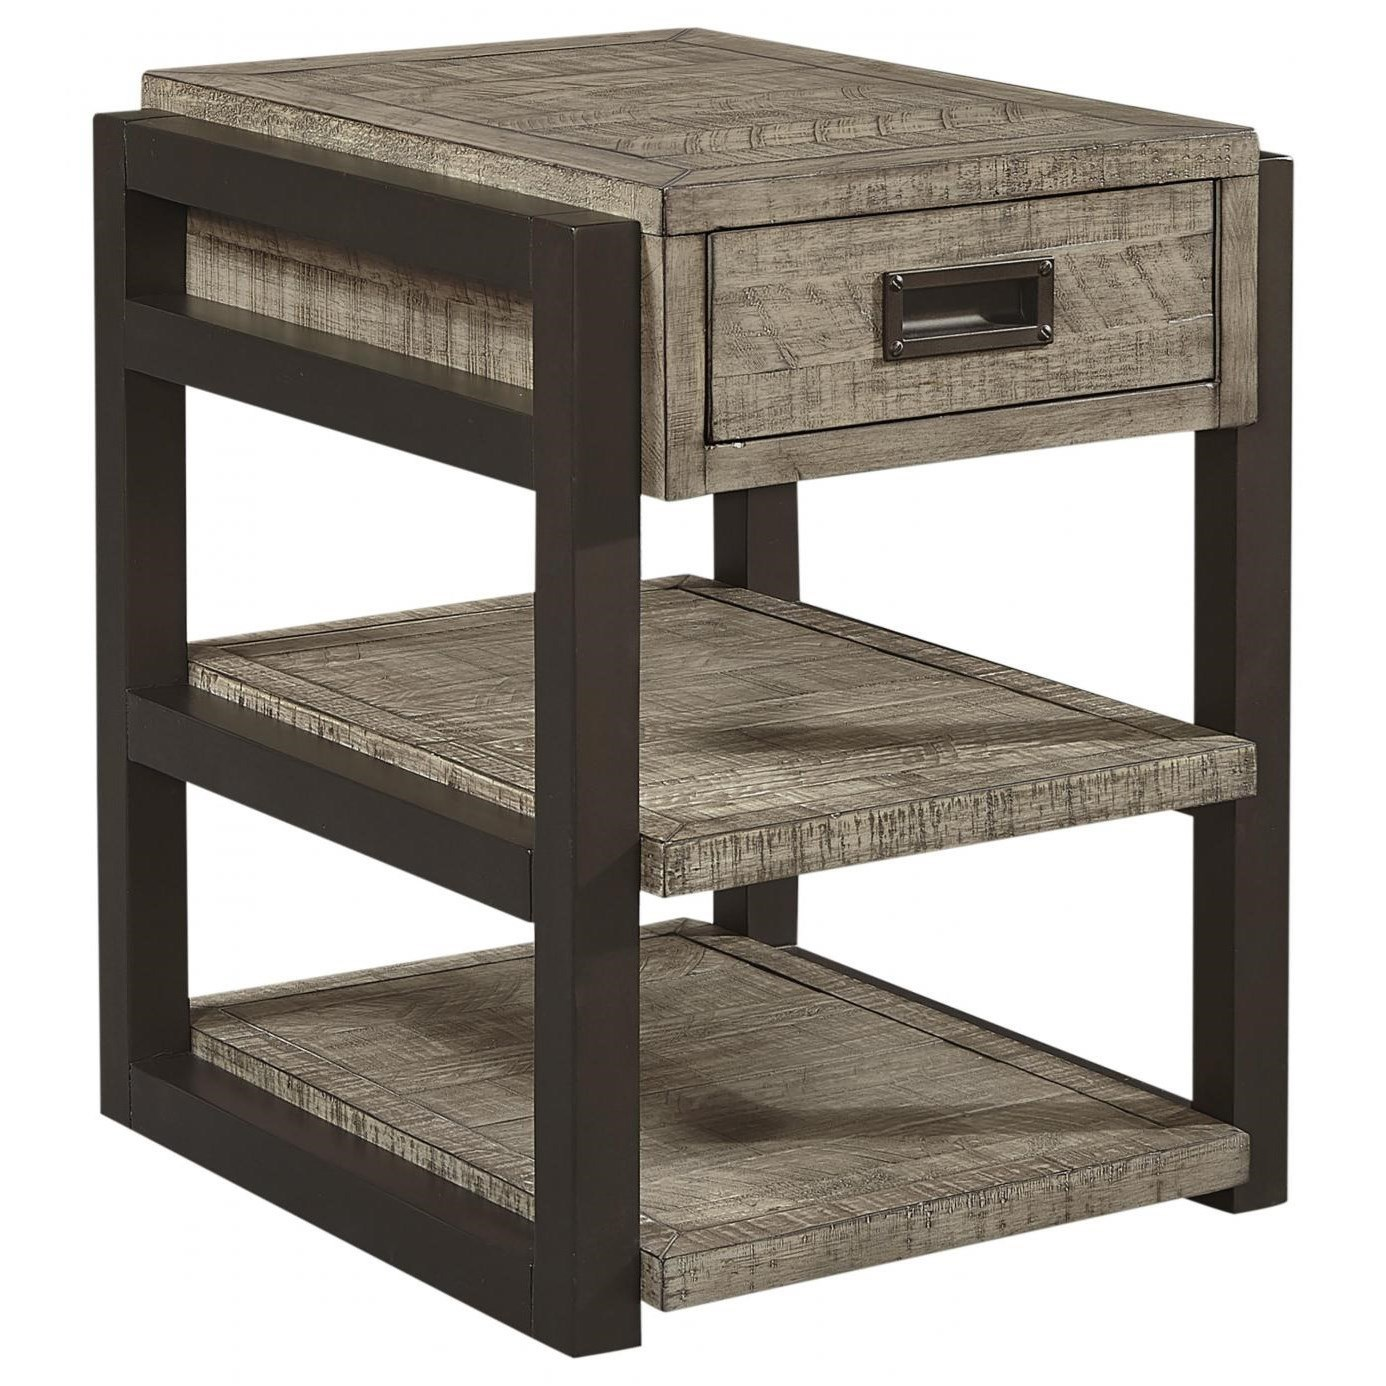 Grayson Chairside Table by Aspenhome at Walker's Furniture